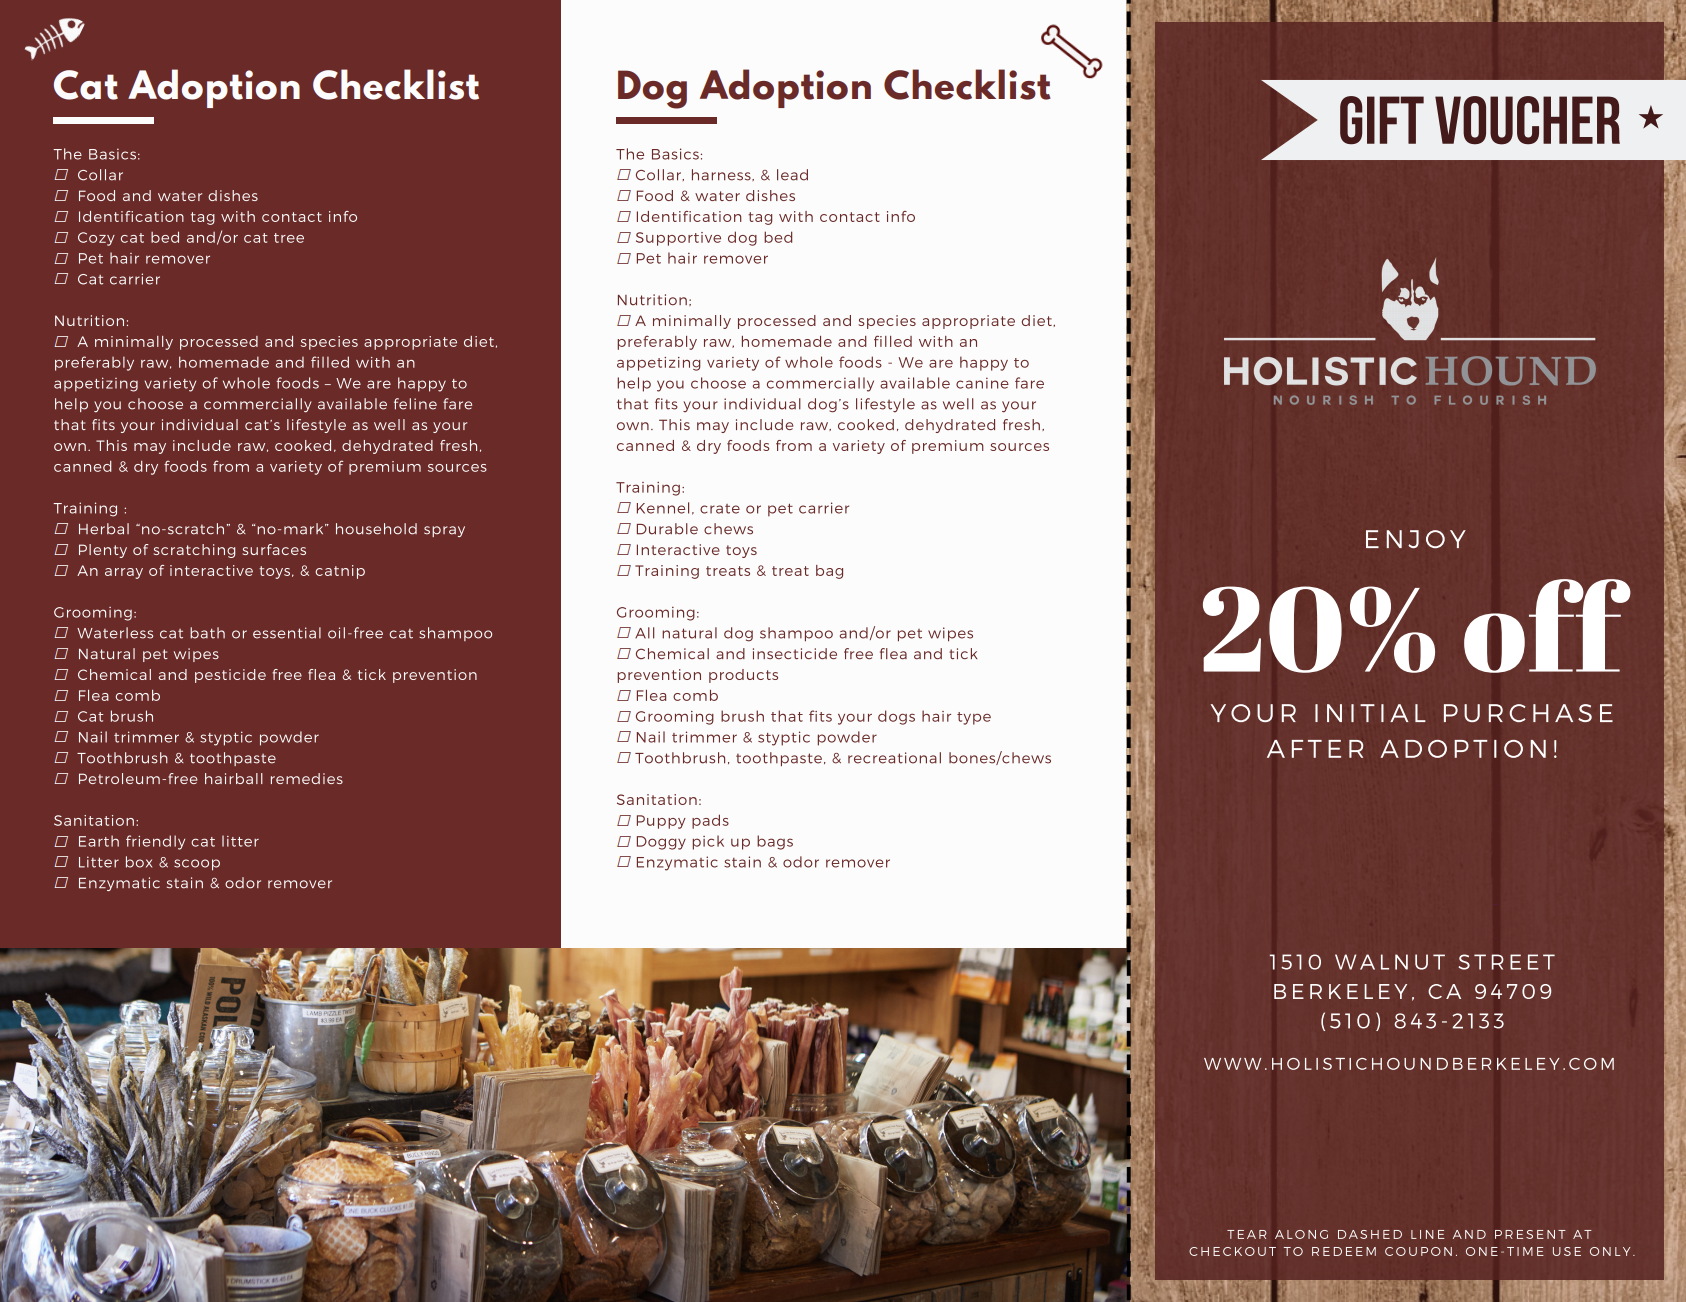 Informational Adoption Brochure & Voucher (Side 2)